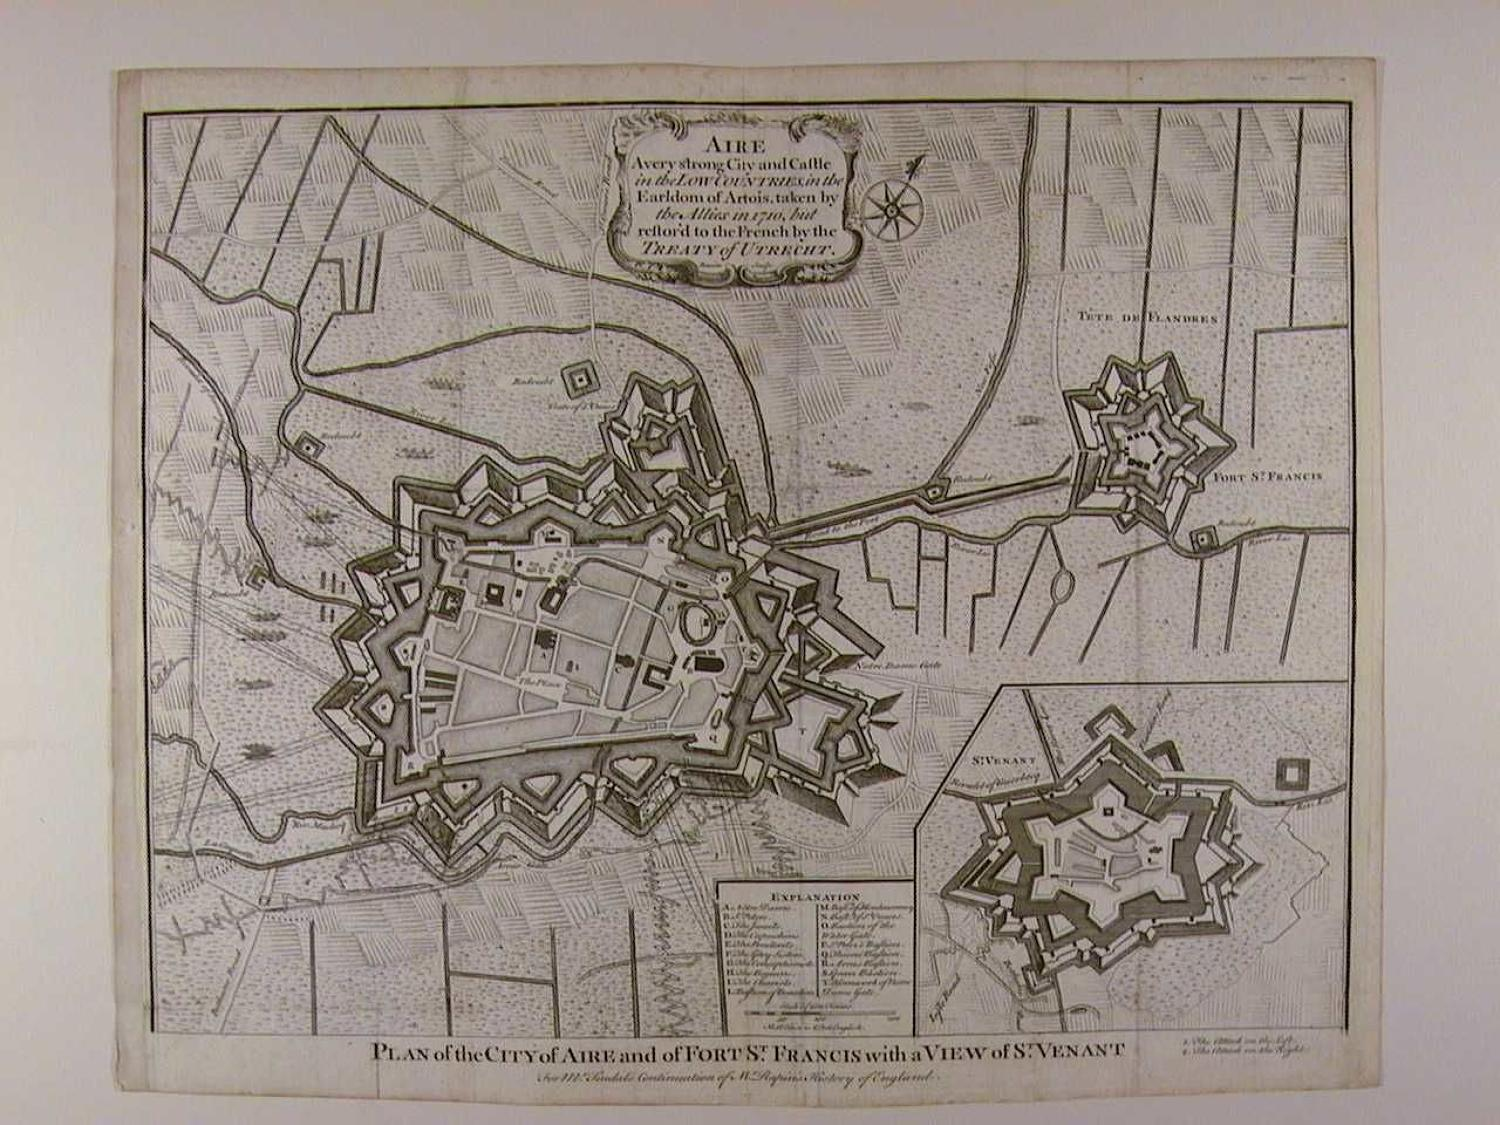 Plan of the City of Aire and of Fort St Francis with a View of St Vena by Isaac Basire